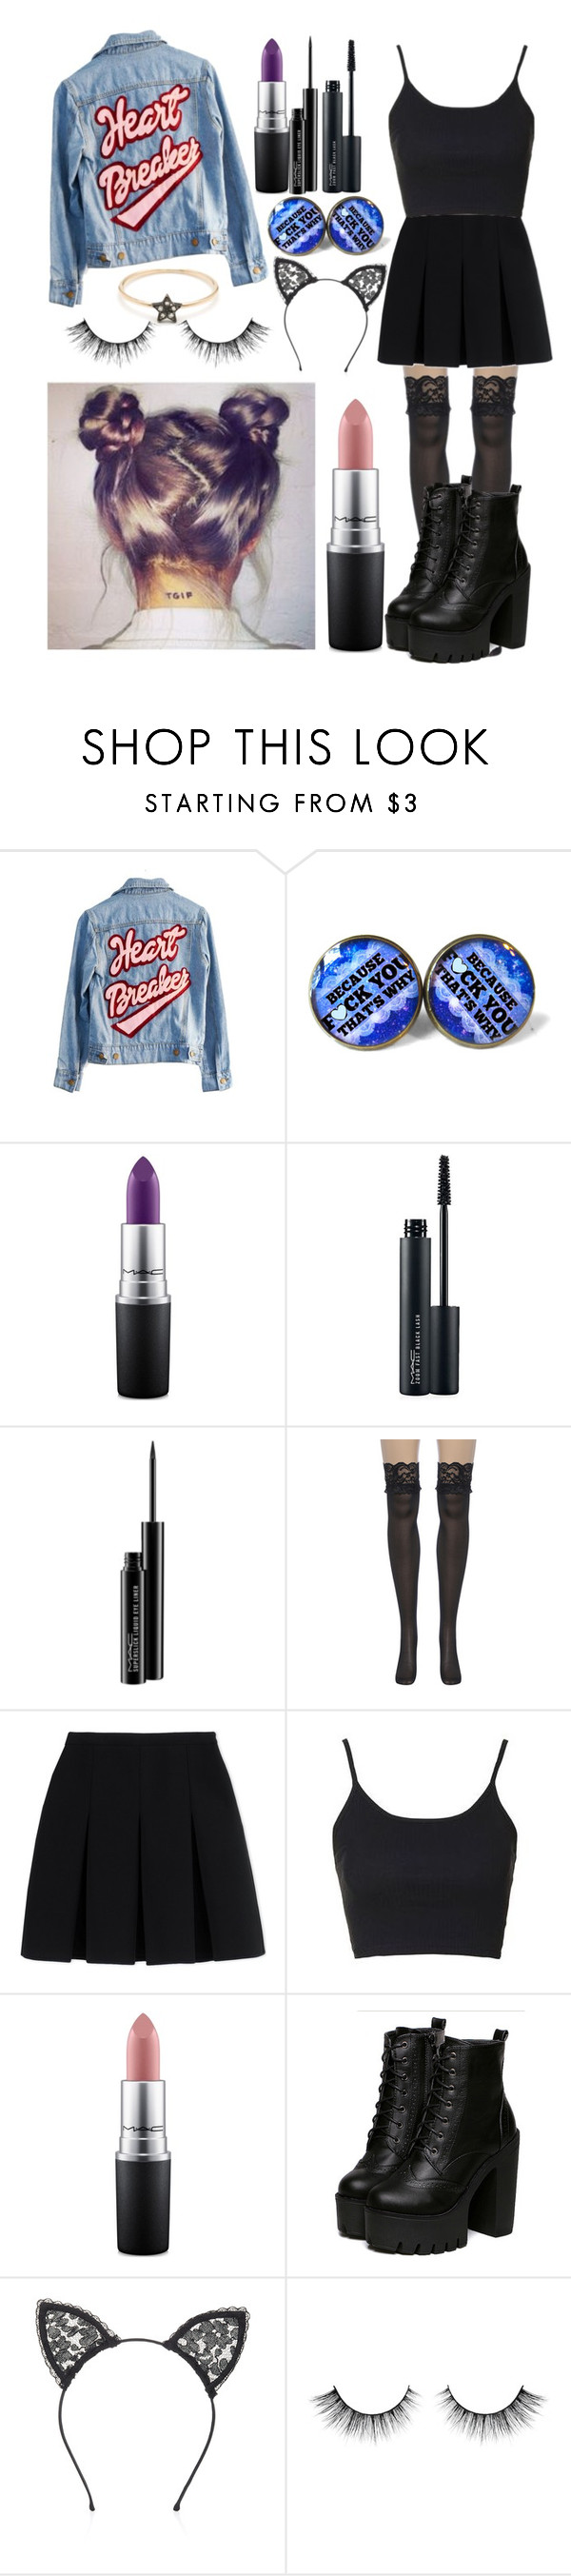 """How to be a heartbreaker by Mariana and the diamonds"" by kaelahclothier on Polyvore featuring High Heels Suicide, MAC Cosmetics, Alexander Wang, Topshop and Fleur du Mal"